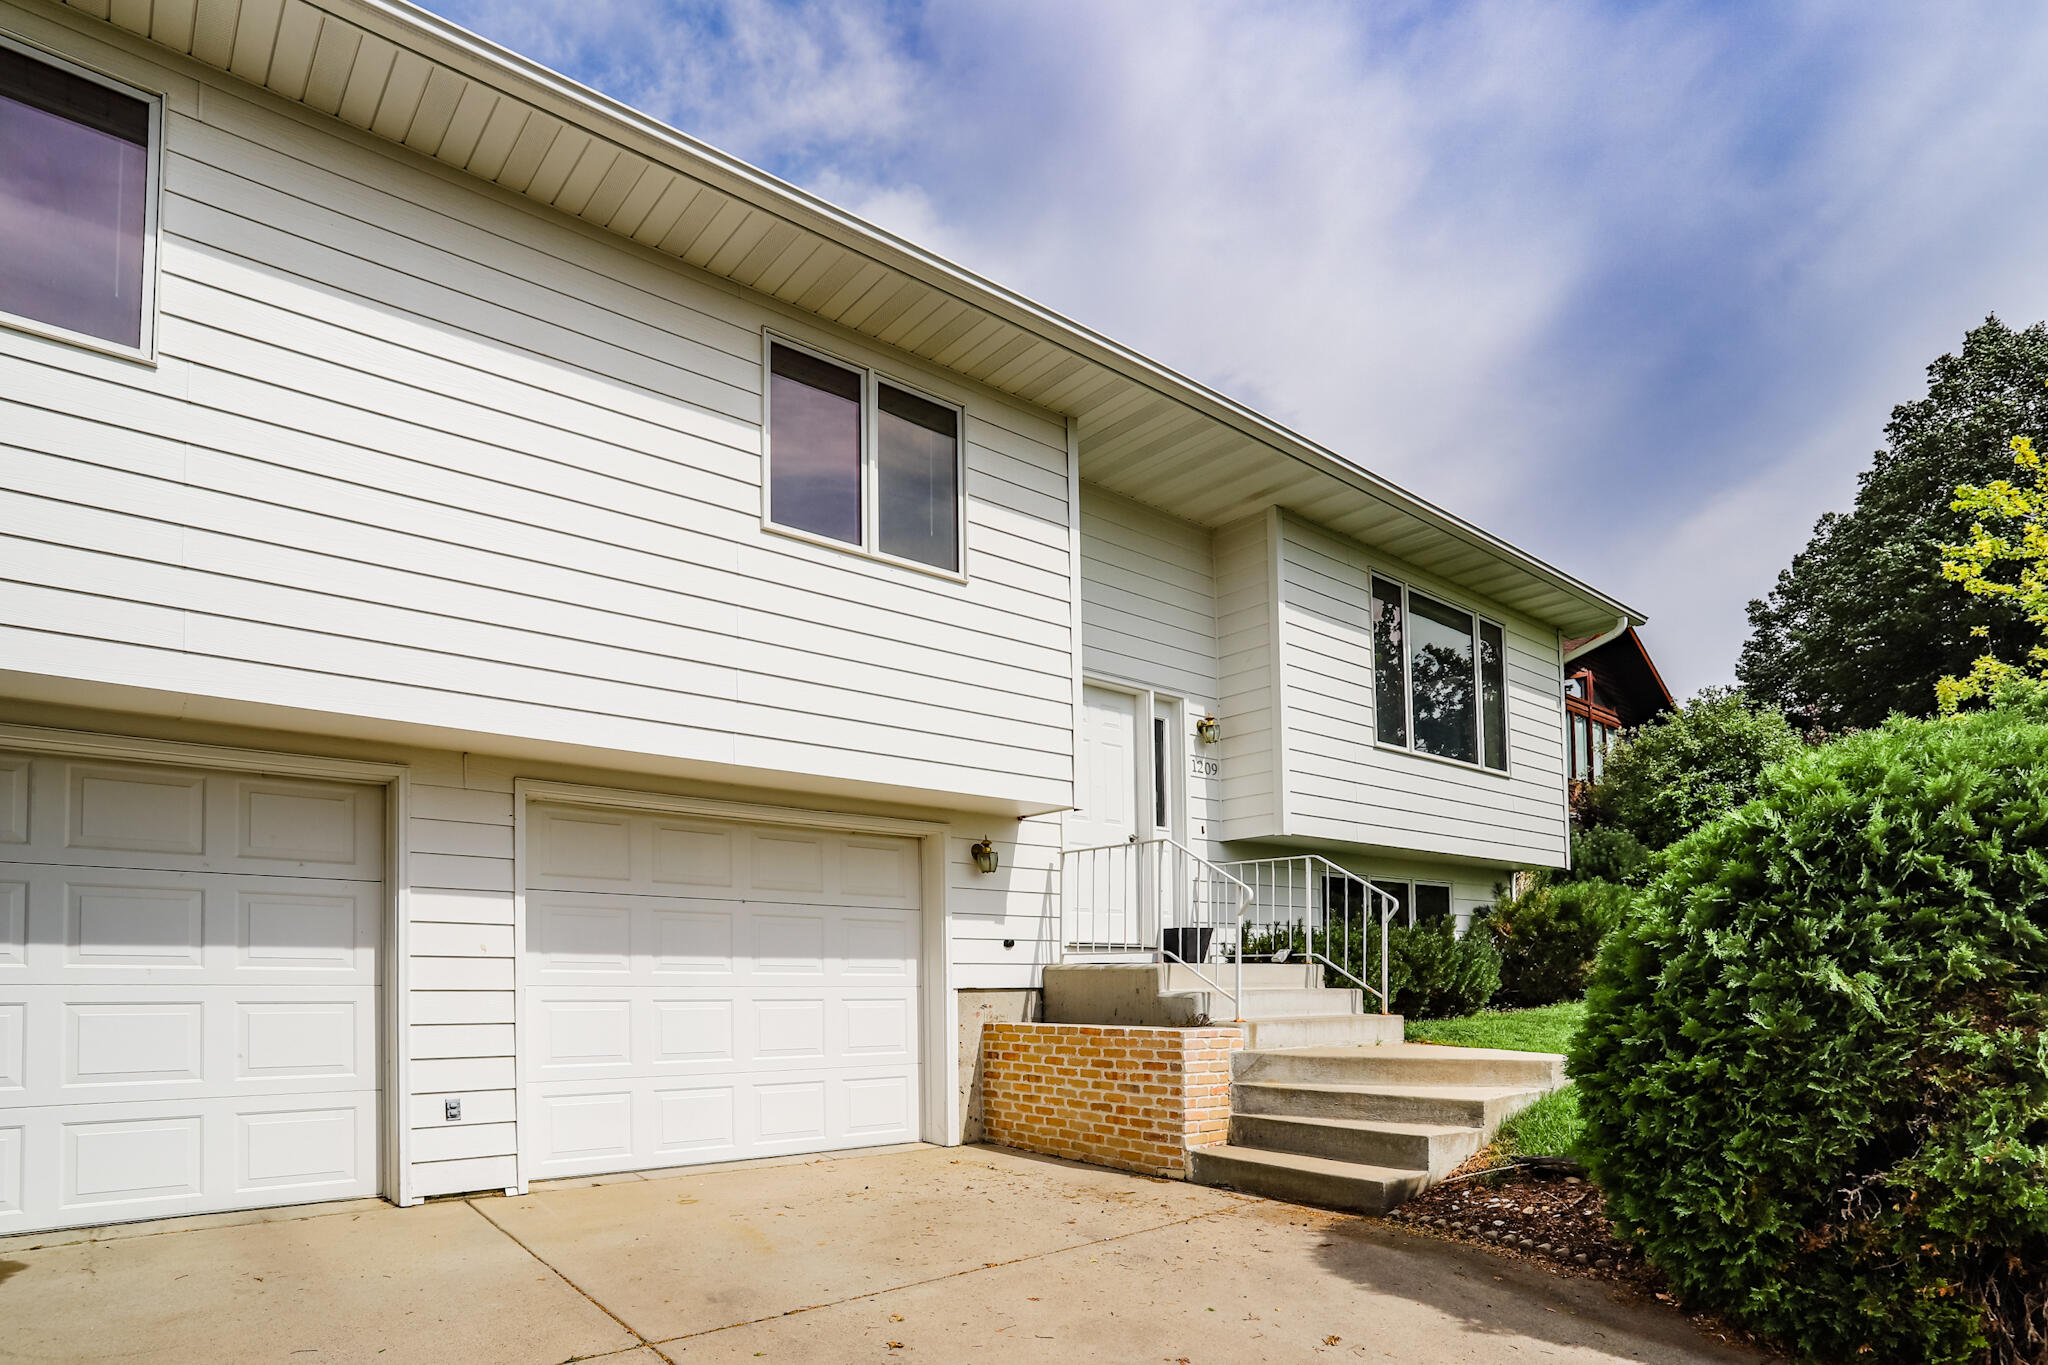 Come fall in love with this 3 bedroom 3 bathroom home on Valley View Drive! New paint and carpet, A/C, sprinkler system, views of the city. Double attached garage plus great backyard for entertaining! Listed by Quenby Klippenes